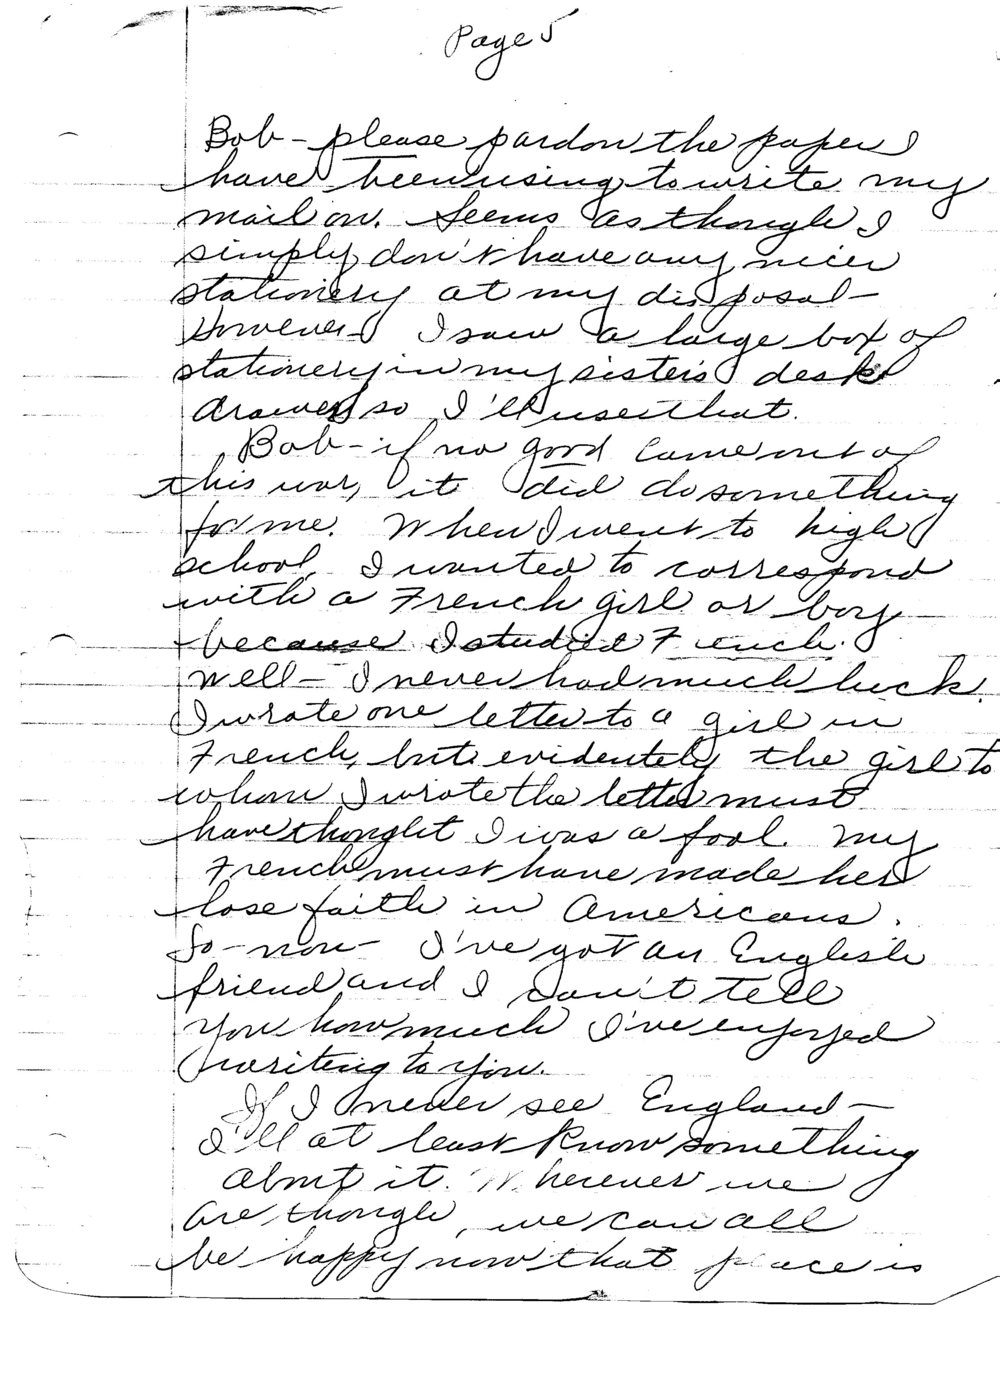 Ruth to Bob, Letter 5, December 20, 1945, page 5 of 6